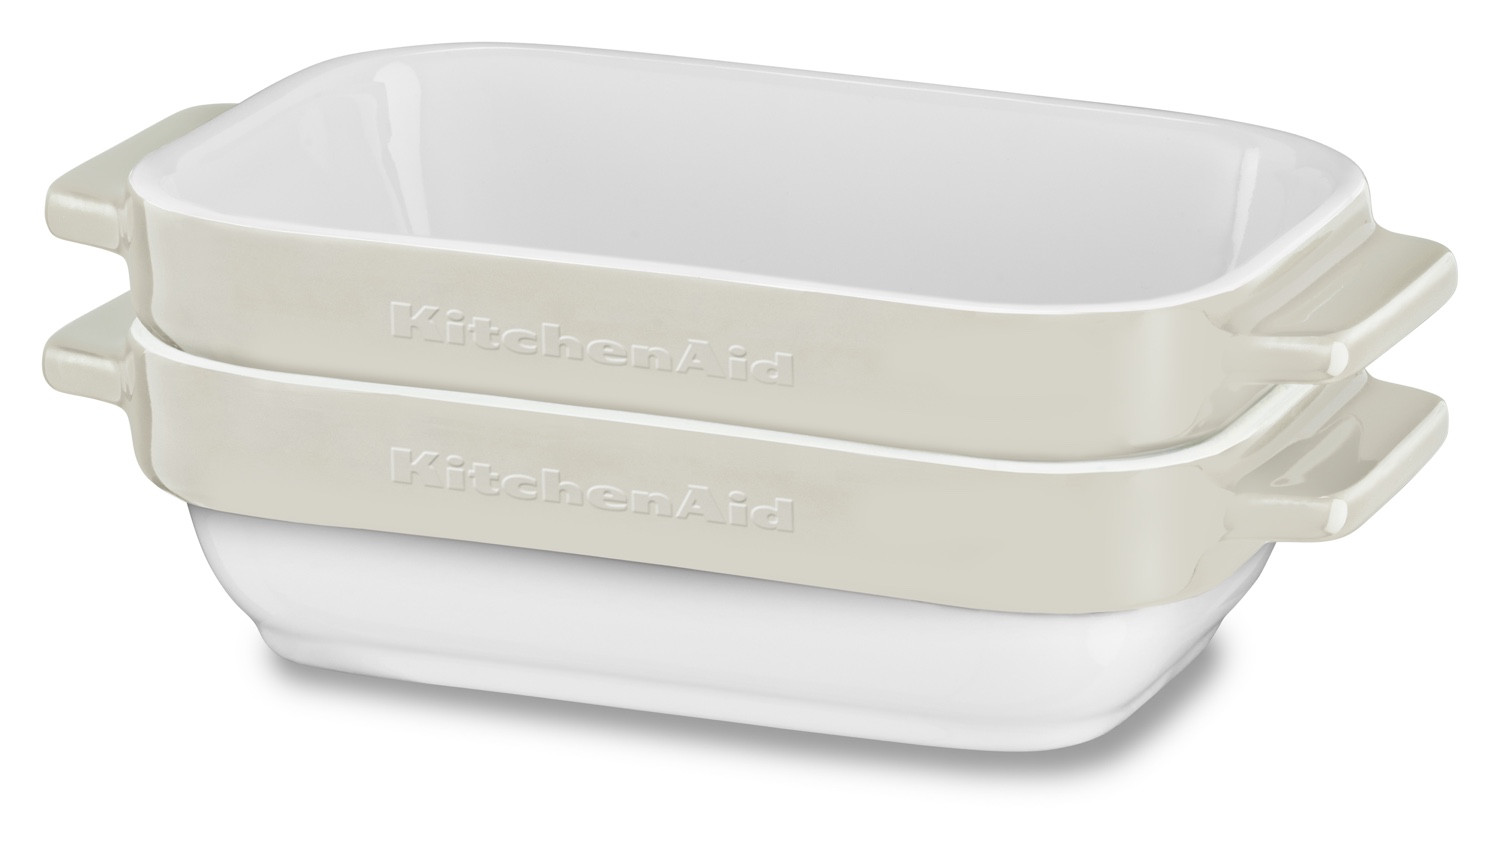 KitchenAid Glaskeramik Mini-Bäcker-Set 2tlg. Crème